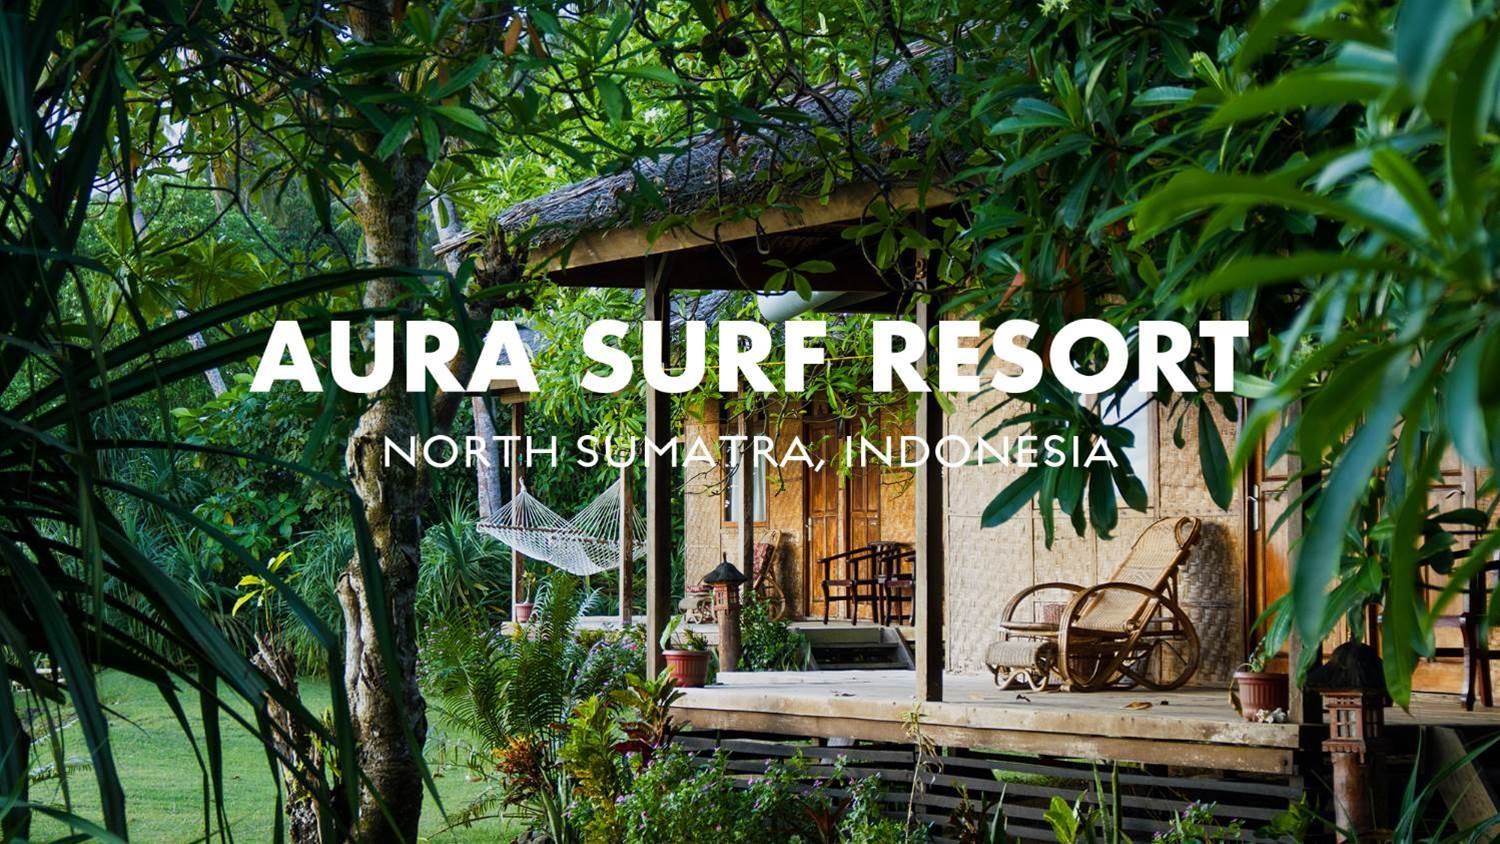 AURA SURF RESORT